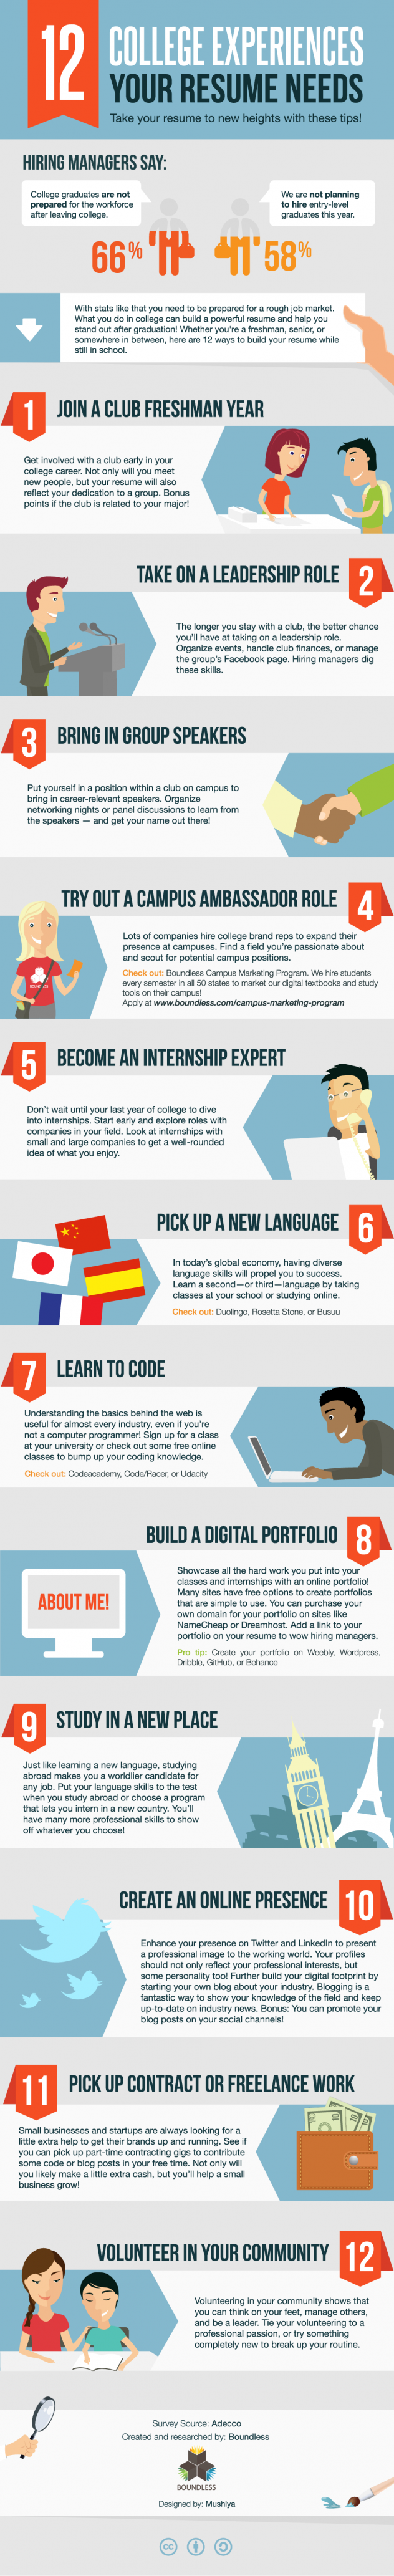 Building Your College Resume For Post Grad Life [Infographic ...